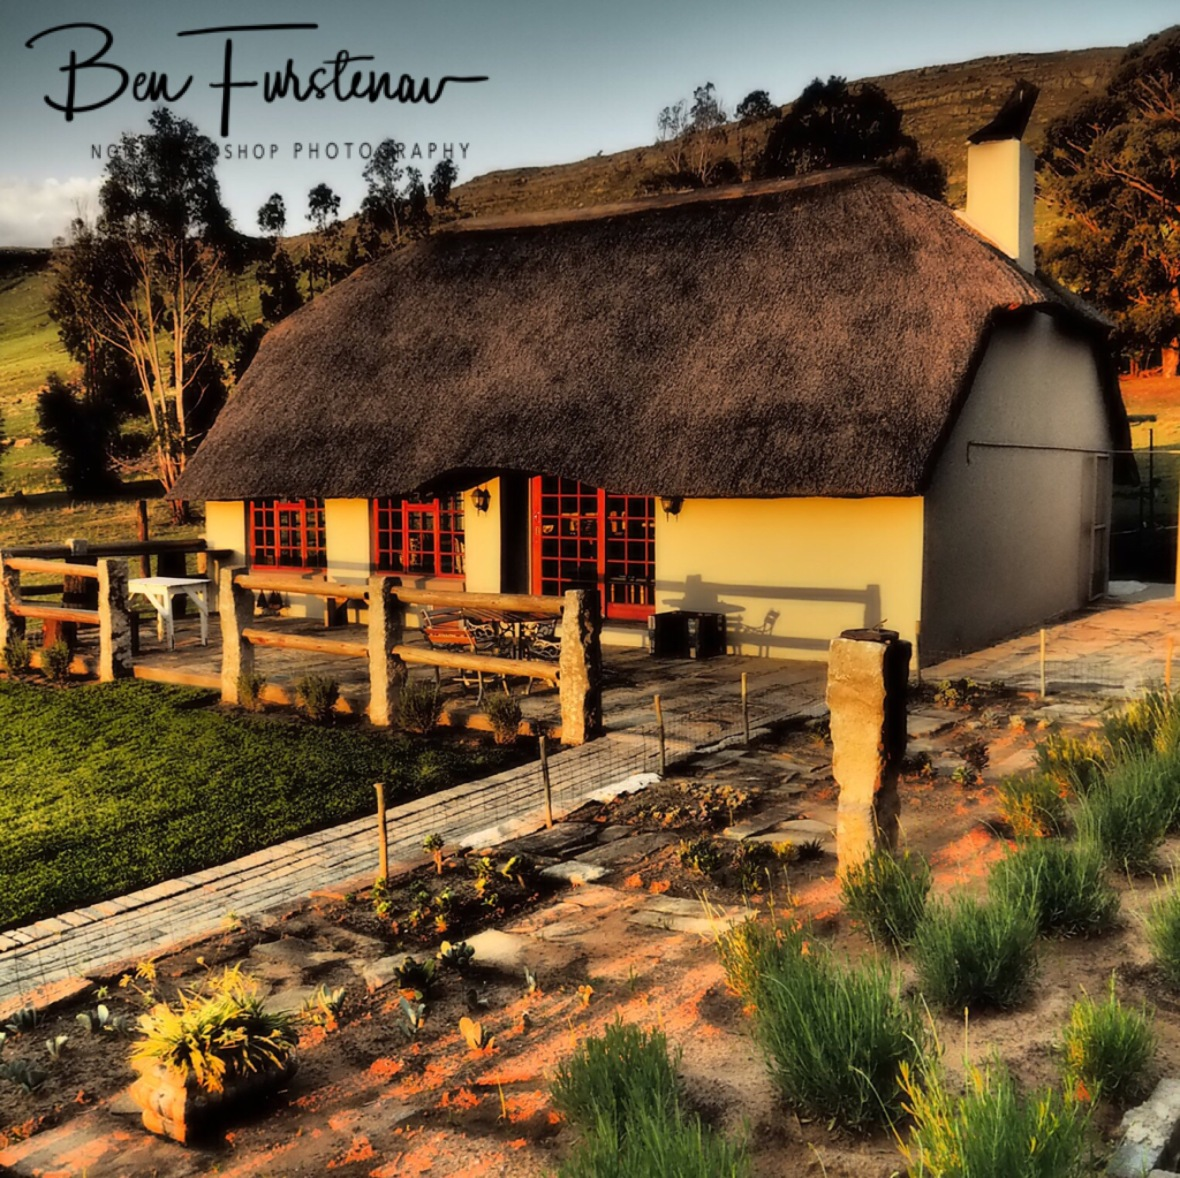 The 'braai house' in Maarmanshoek, Free State